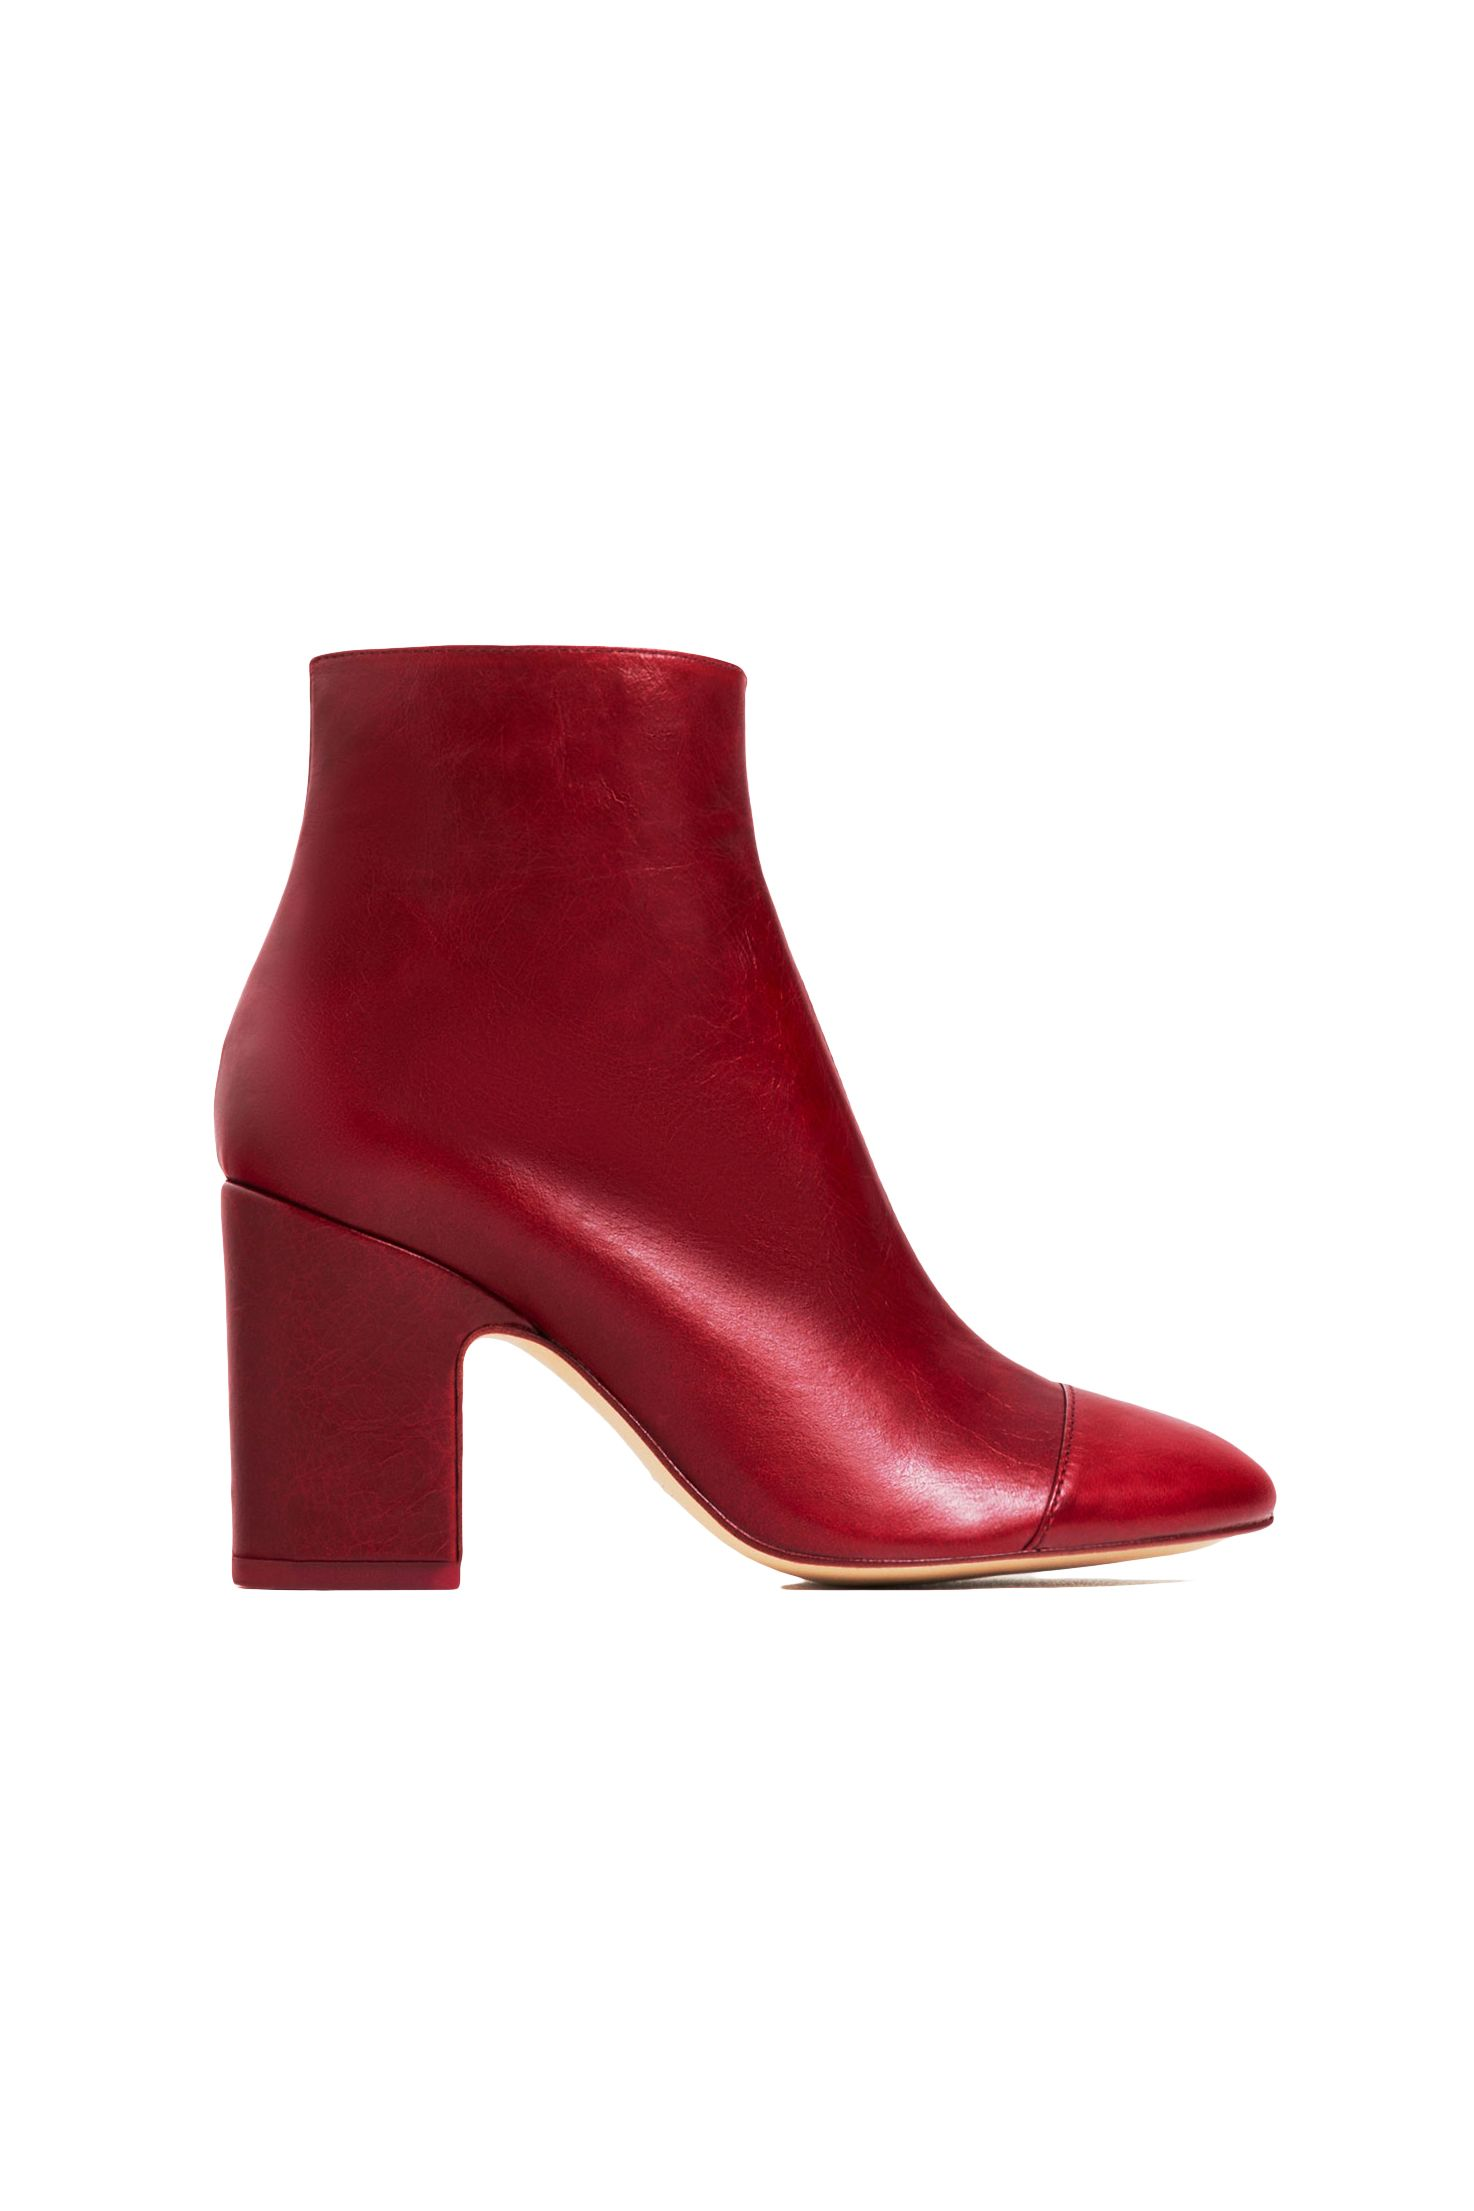 """<p>In the world of fashion free association, toe cap = Chanel = fancy. Plus it visually shortens the length of the foot. </p><p>$139, <a href=""""http://www.zara.com/us/en/woman/shoes/boots-and-ankle-boots/high-heel-leather-ankle-boots-with-toe-cap-c665040p3610010.html"""" target=""""_blank"""">zara.com</a>.</p>"""